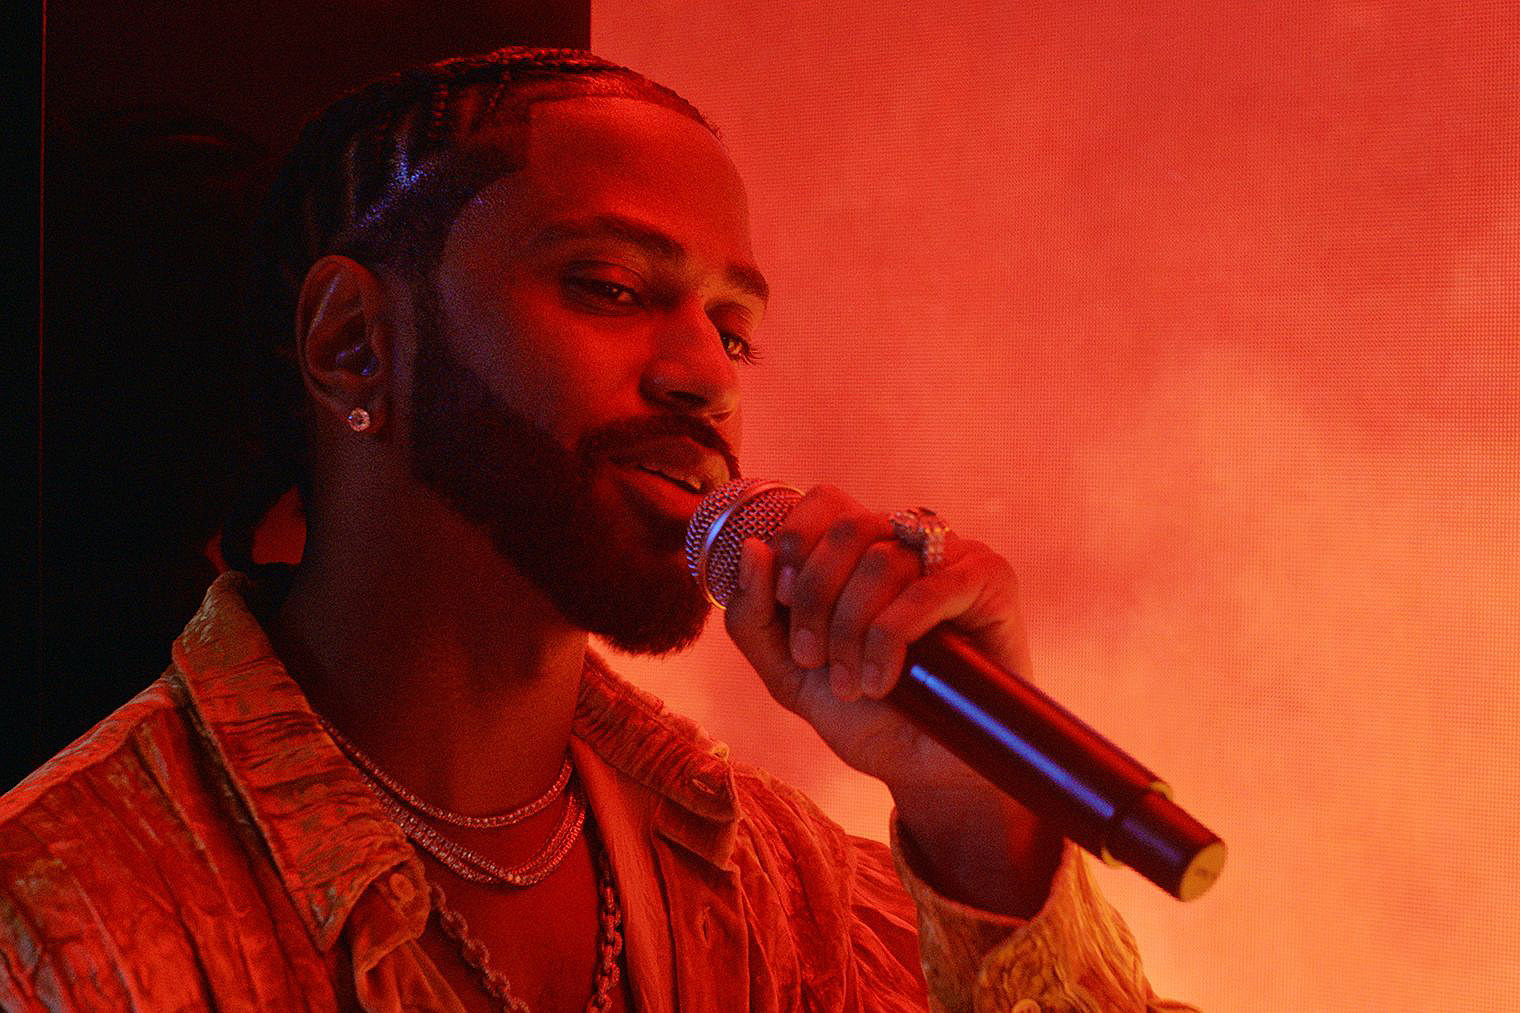 Big Sean Reveals He Has Contemplated Suicide